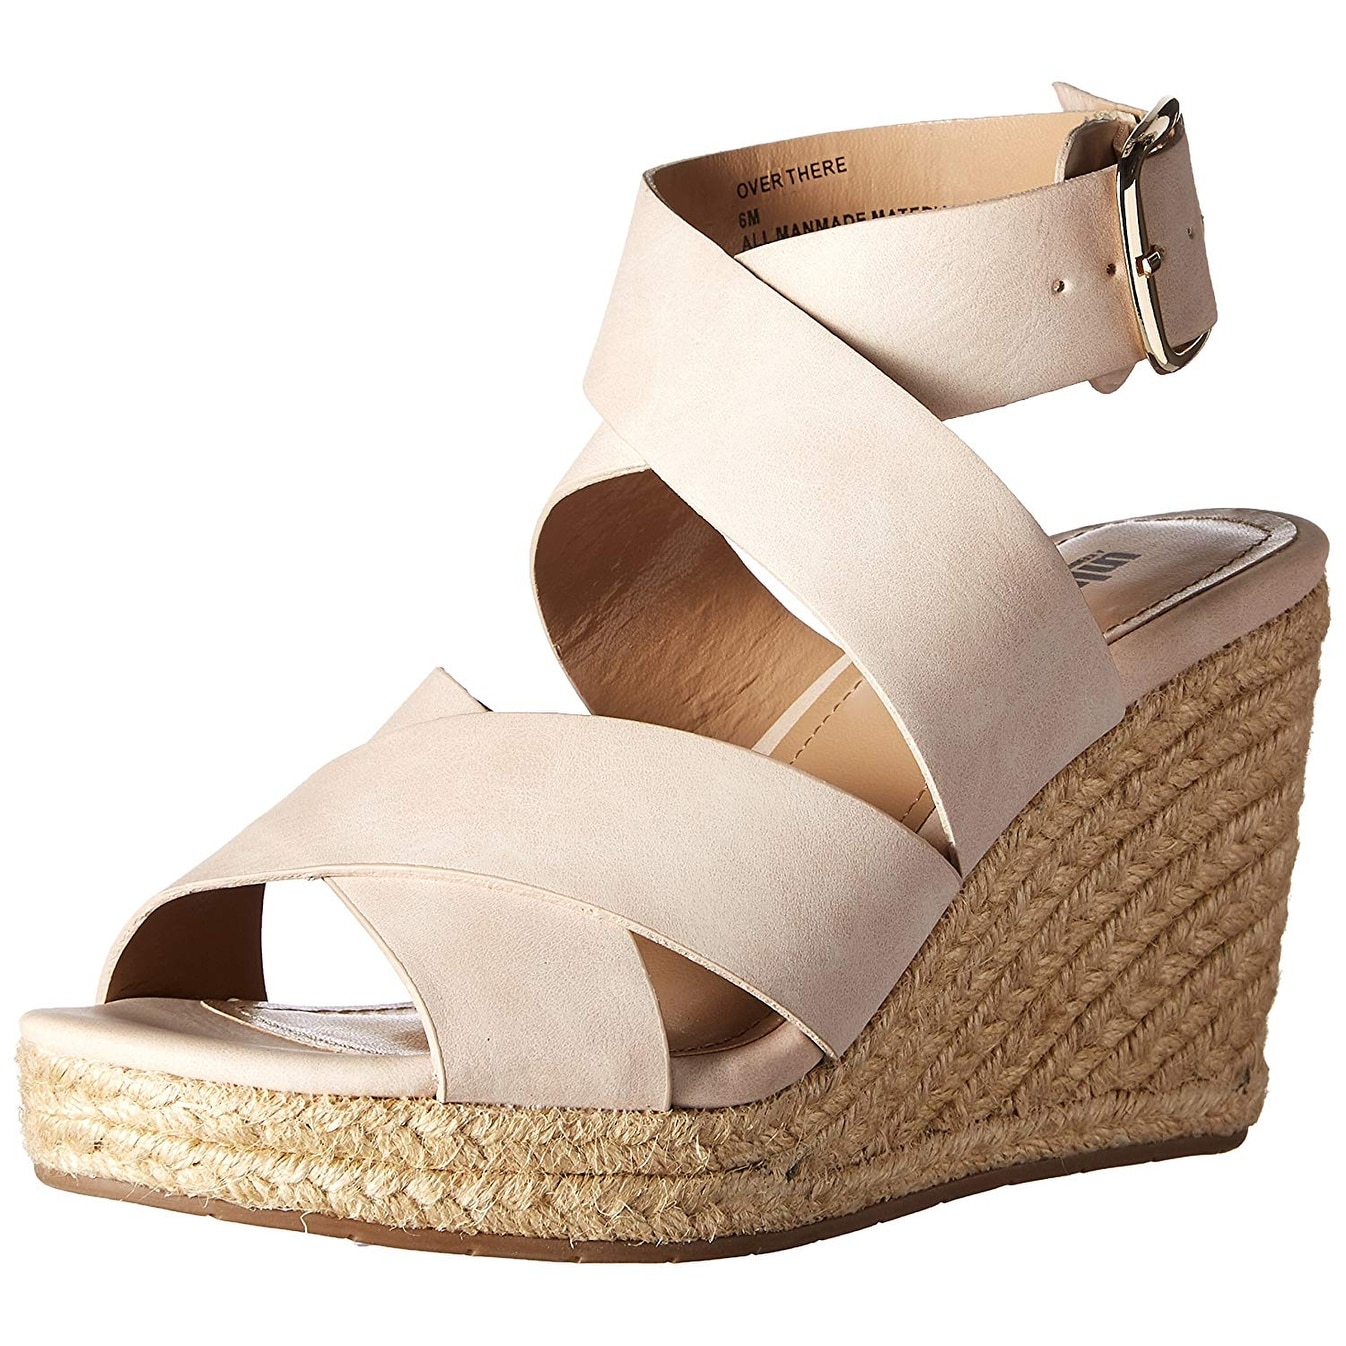 002ded4ce62 Shop Unlisted Women s Over There Espadrille Wedge Sandal - Free ...